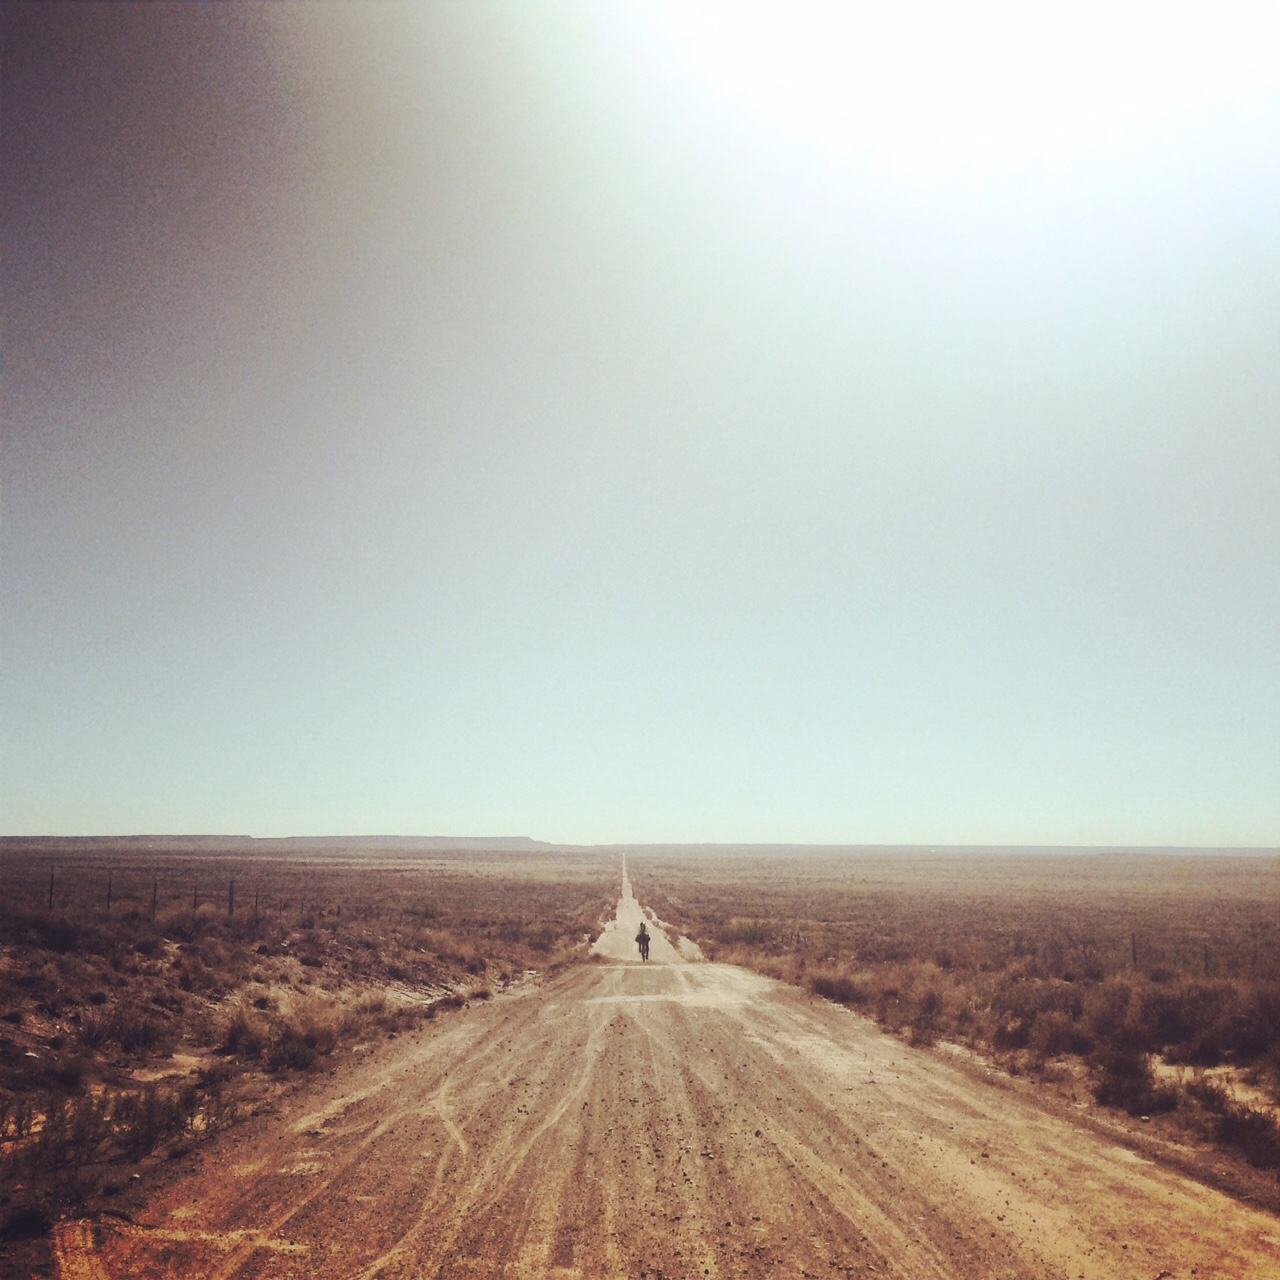 Somewhere near the Texas/New Mexico border some 30 miles from Tucumcari, the end of an a 900 mile race across Texas.